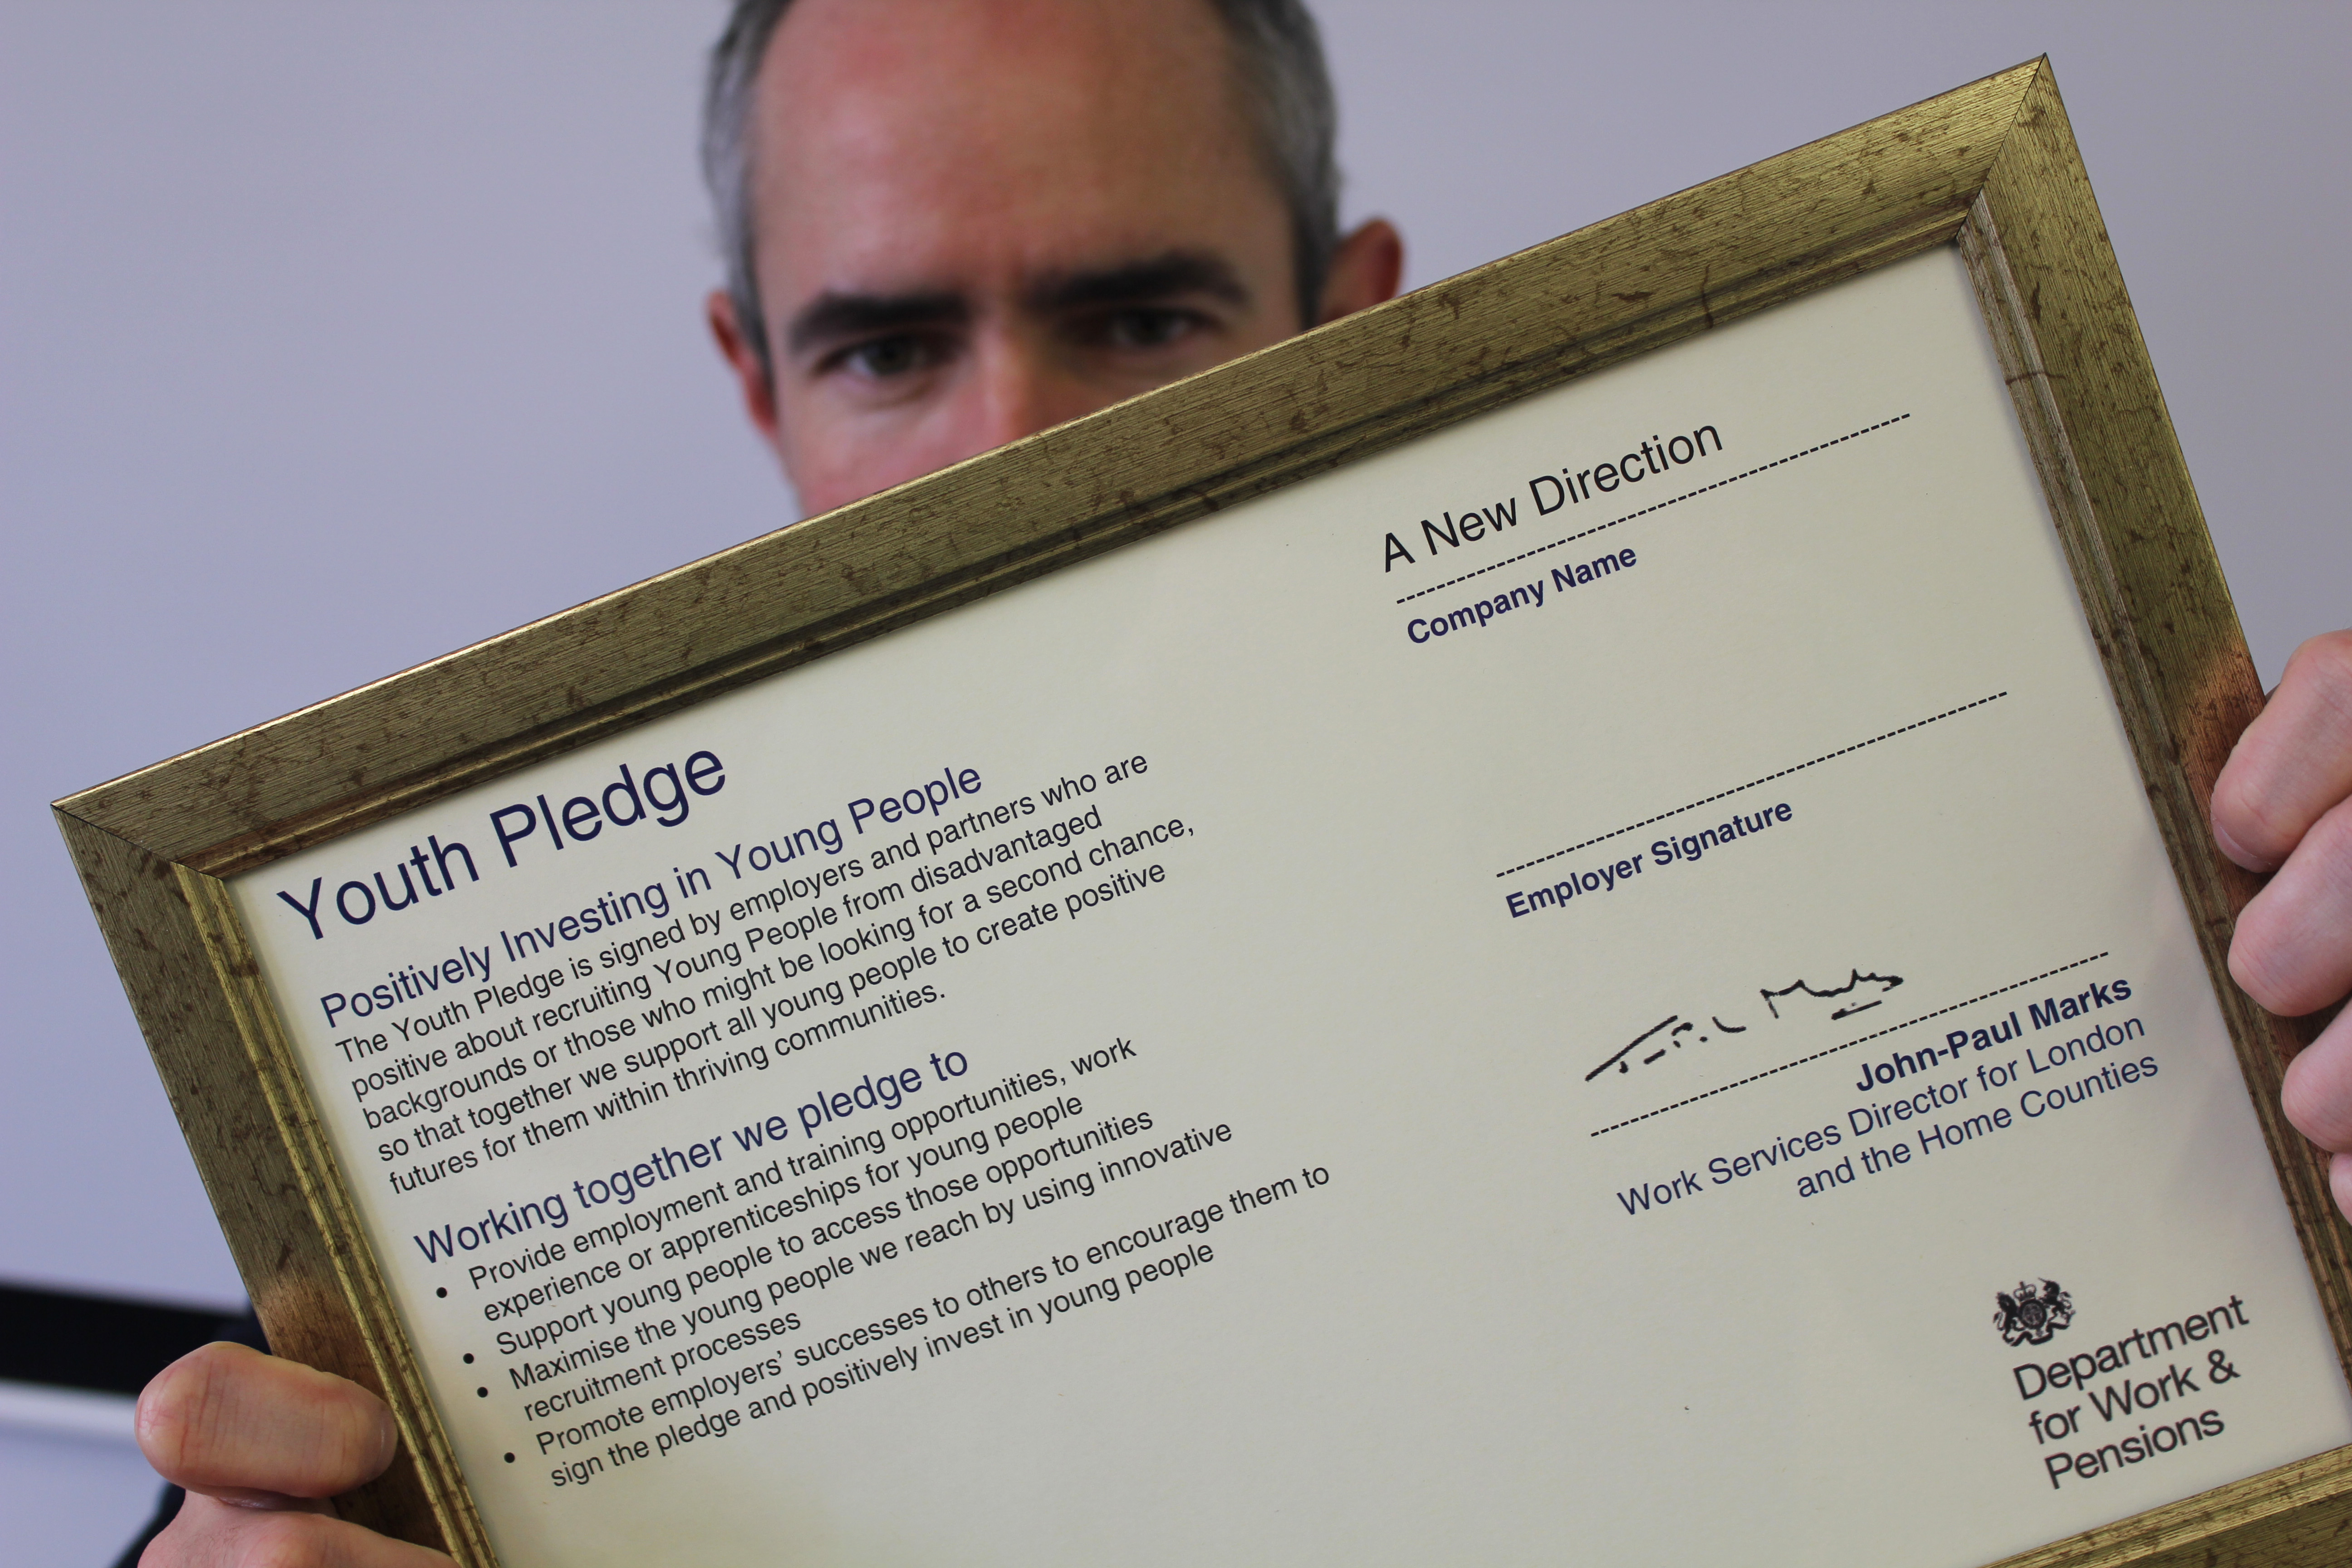 A New Direction signs up for Youth Pledge | A New Direction